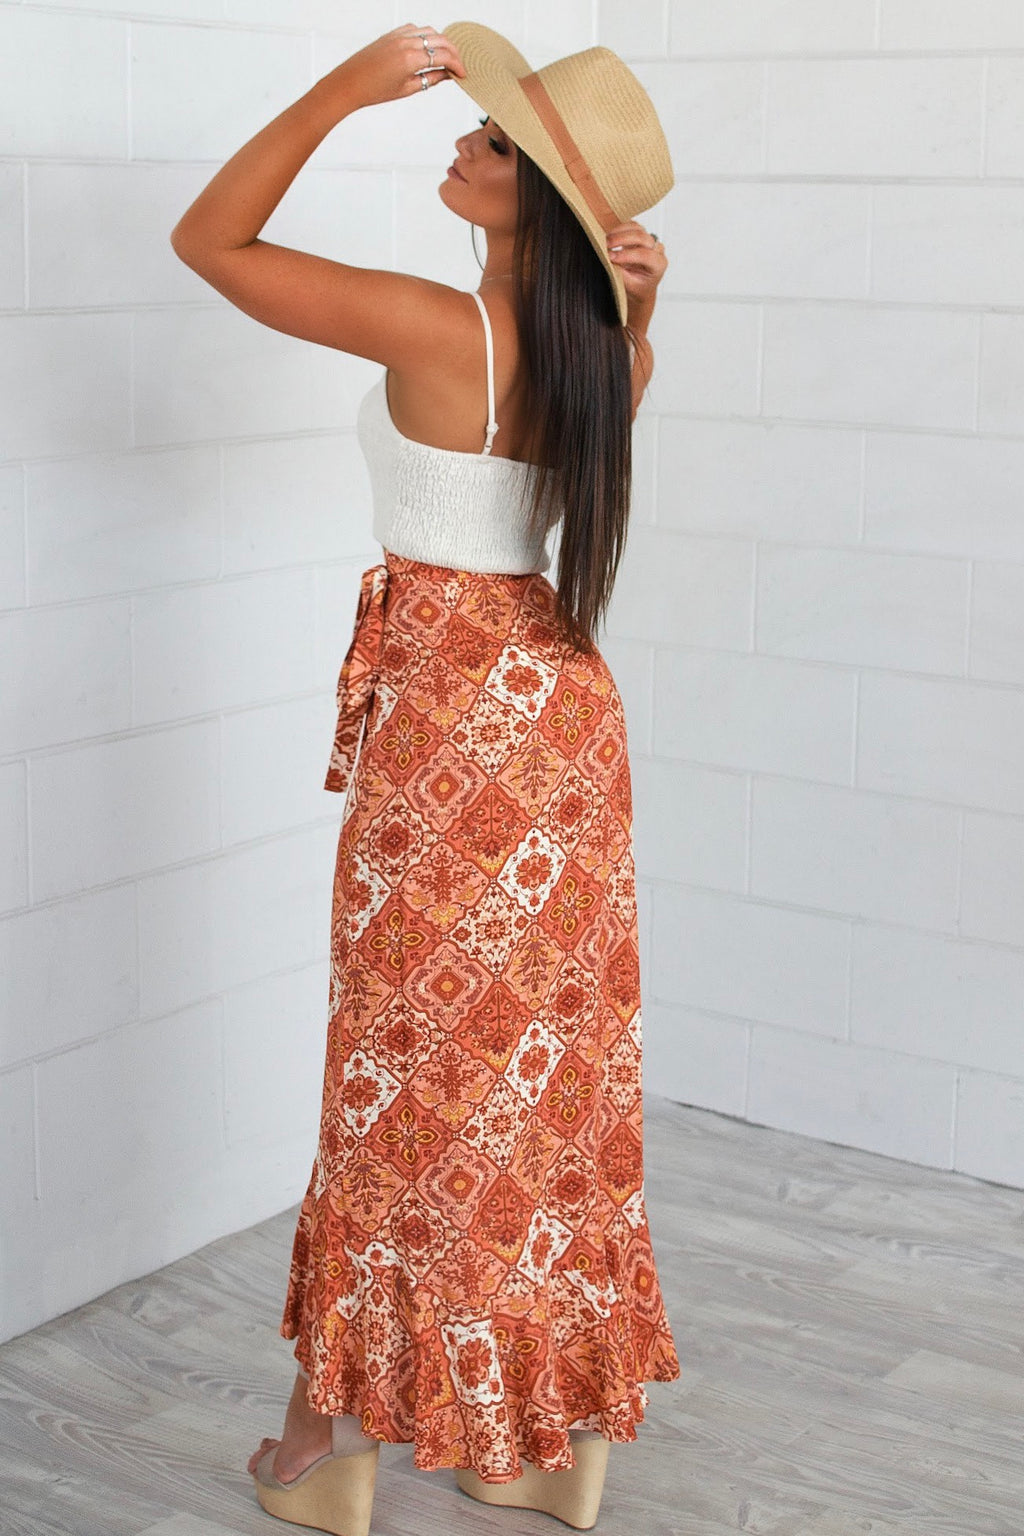 Phoenix Orange Wrap Skirt - Runway Goddess